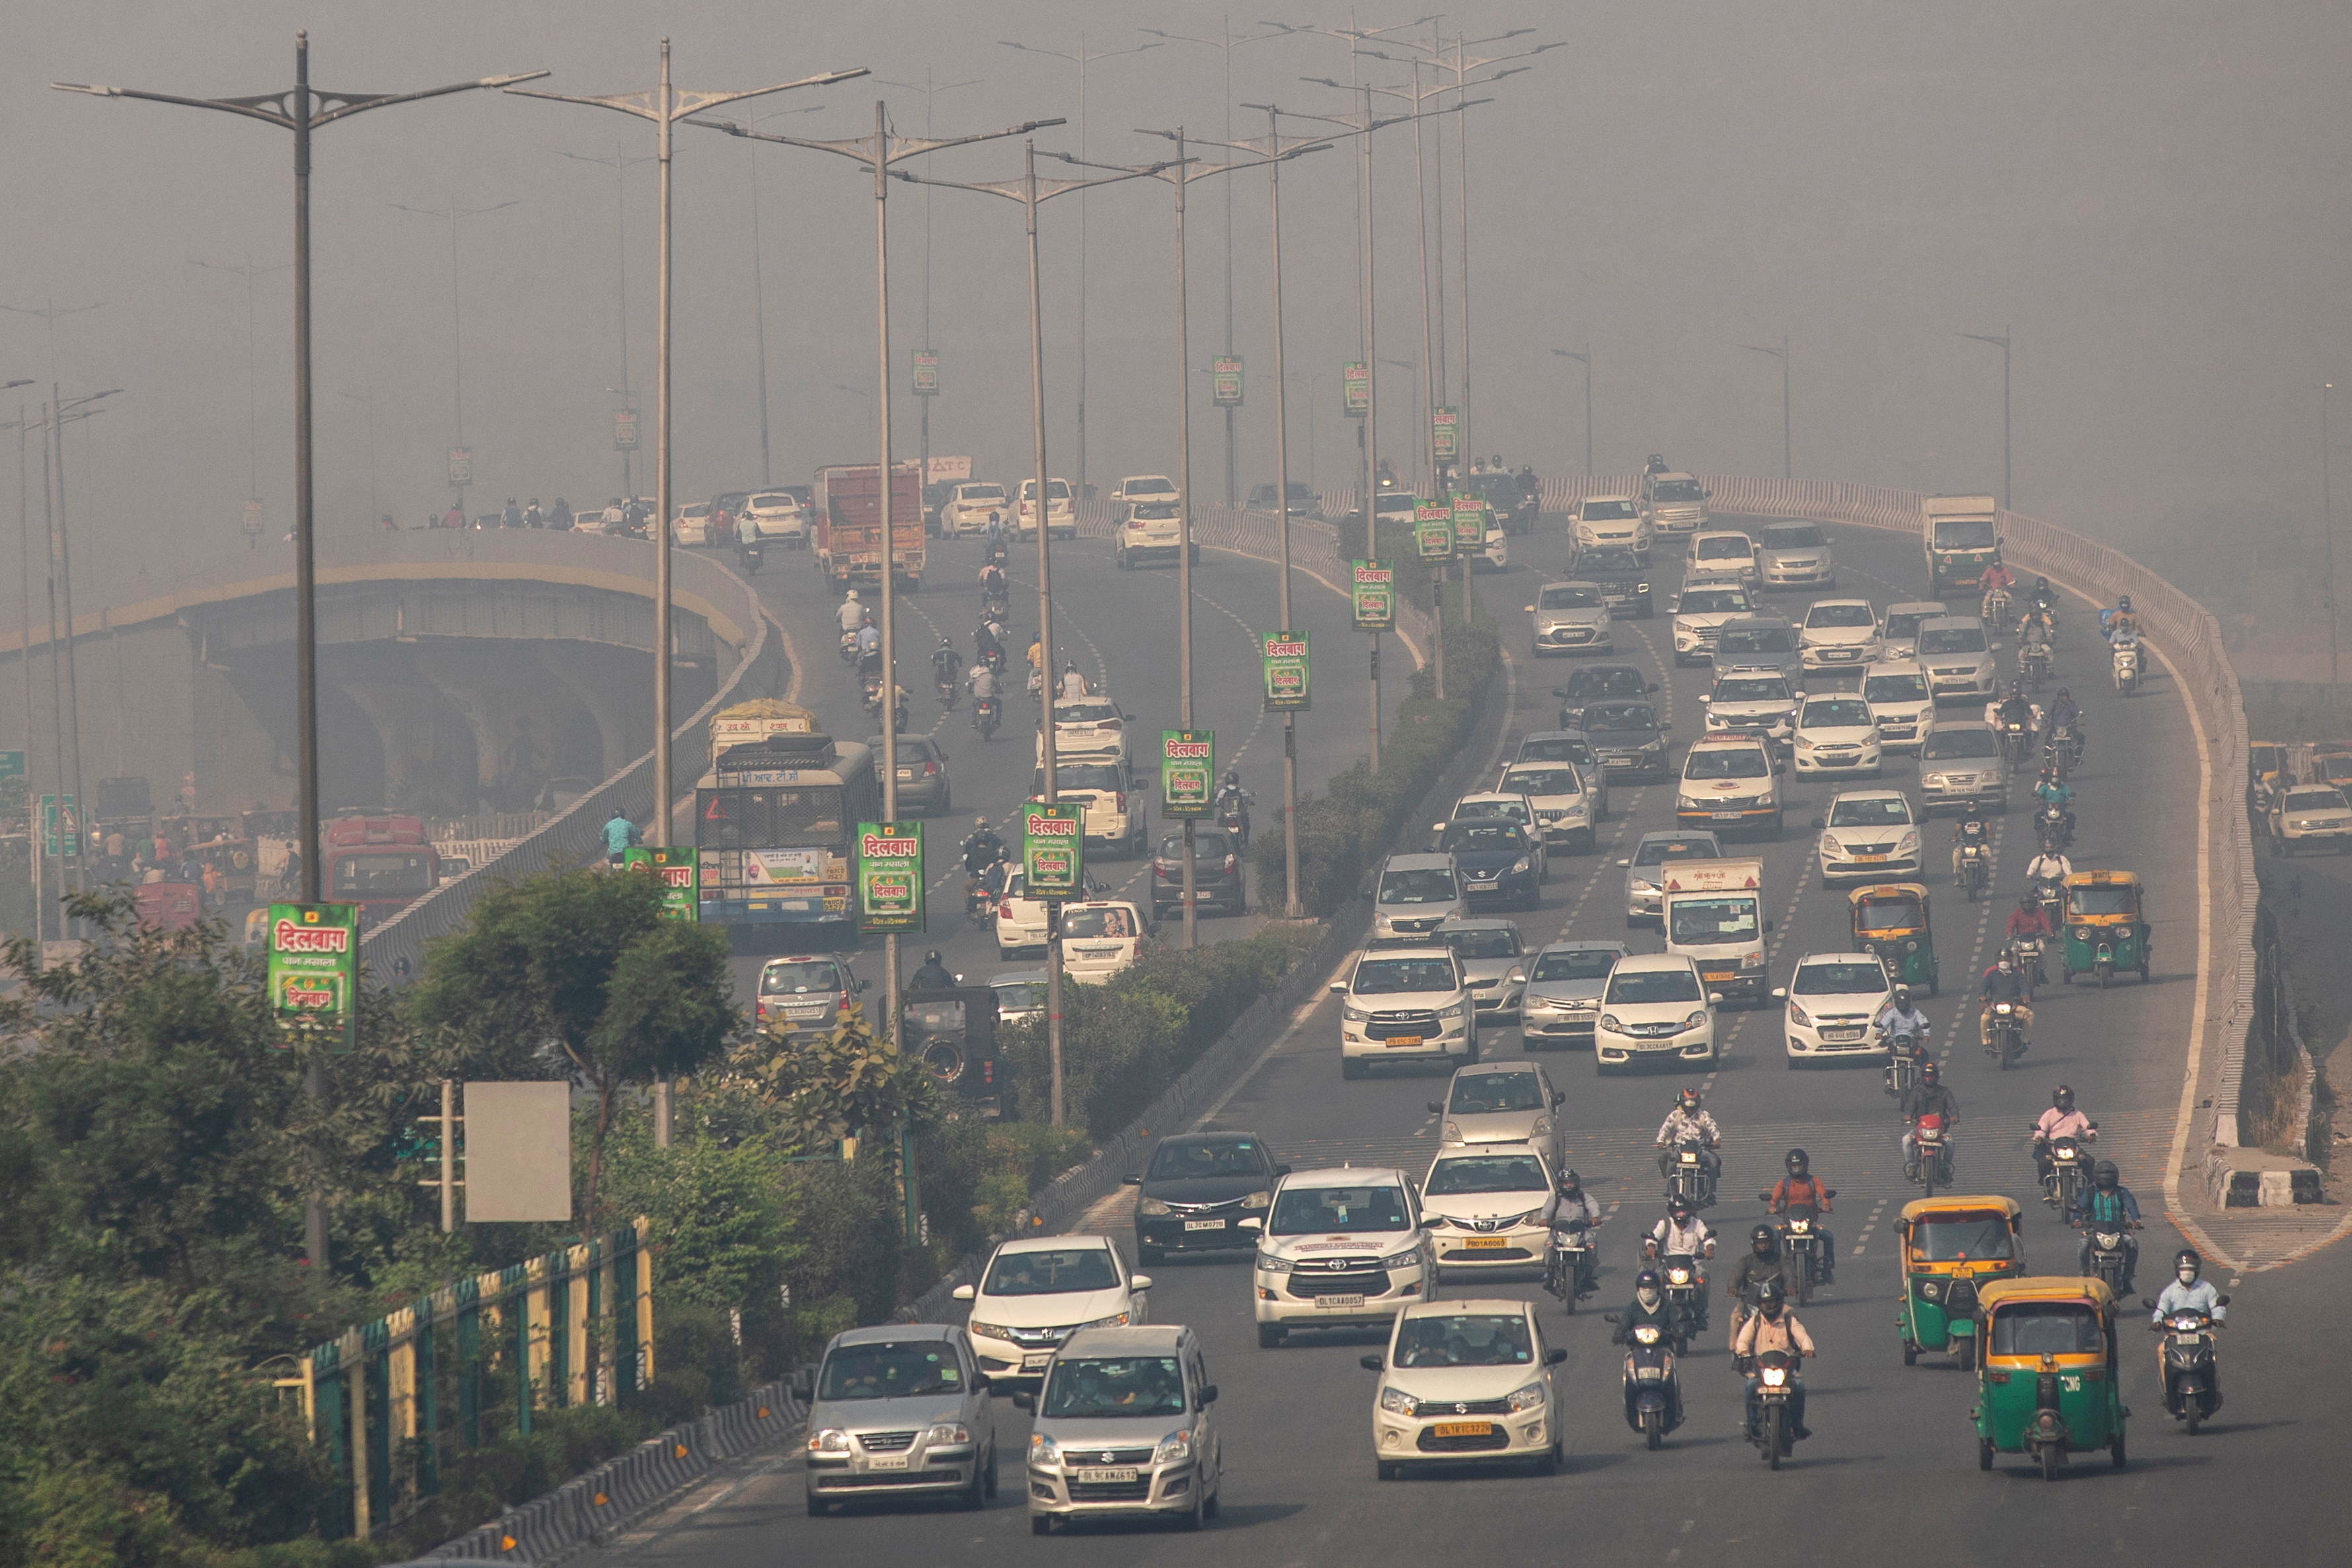 Traffic moves on a smoggy morning in New Delhi, India, October 23, 2020. REUTERS/Danish Siddiqui/File Photo